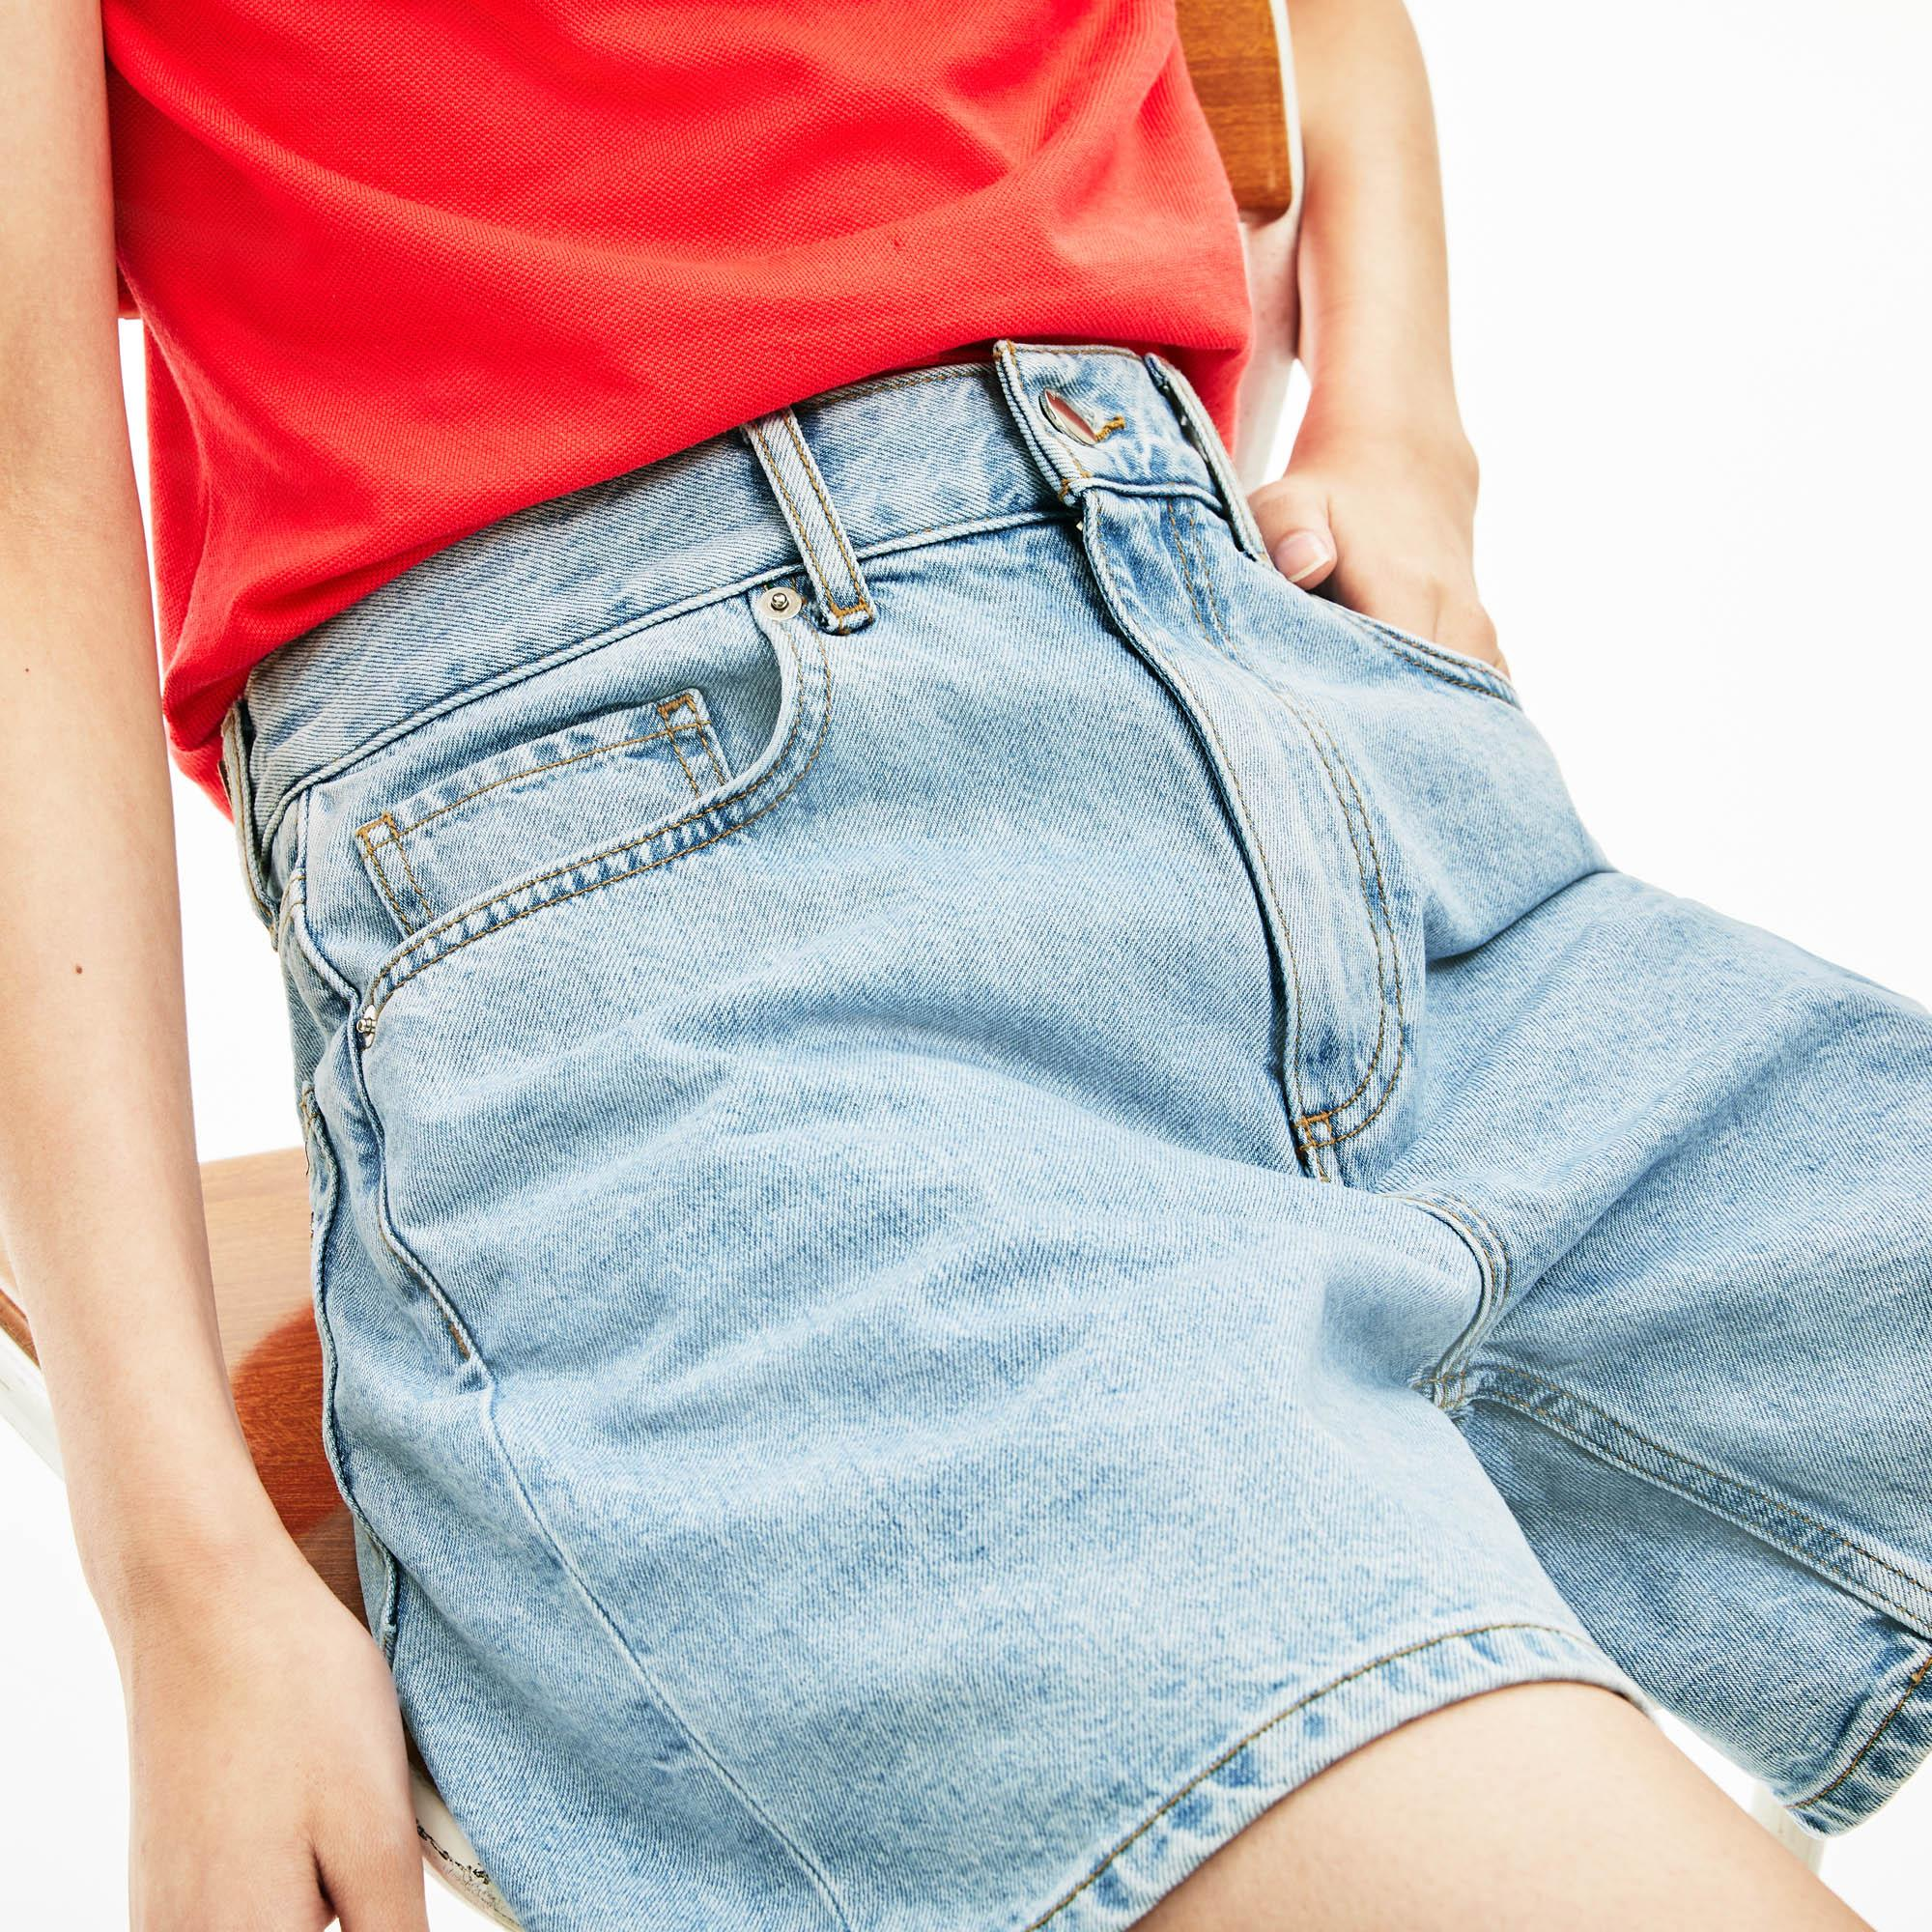 Lacoste Women's Relaxed Fit Japanese Cotton Jean Shorts